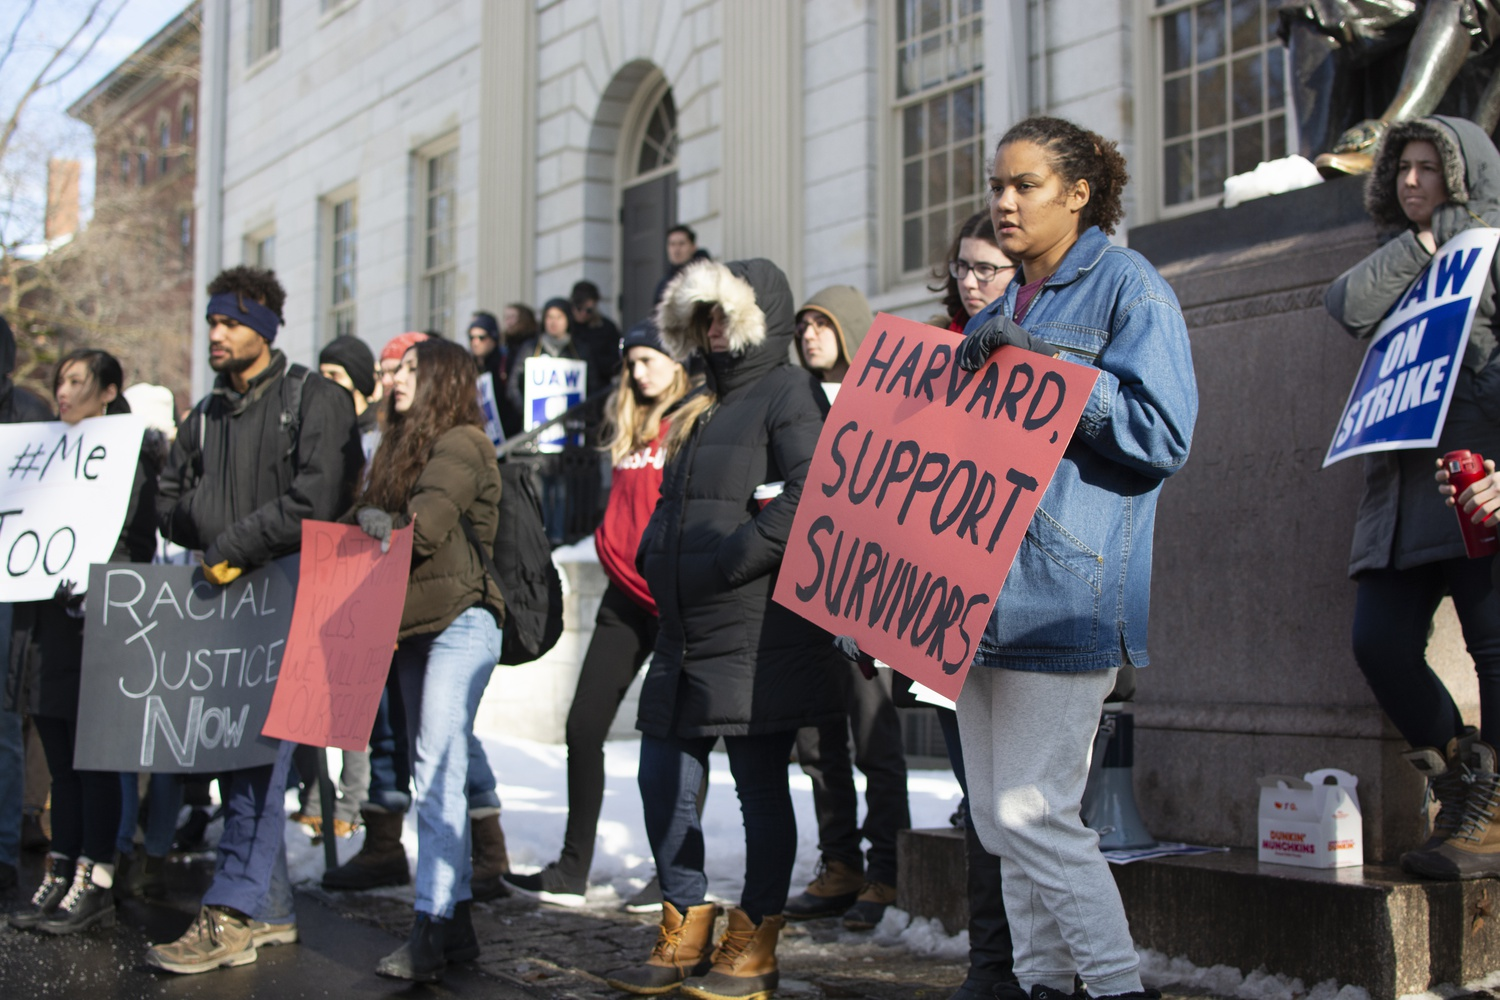 The grad union also held a Time's Up rally Thursday, with protesters calling on Harvard to support affiliates who have experienced sexual harassment or assault.